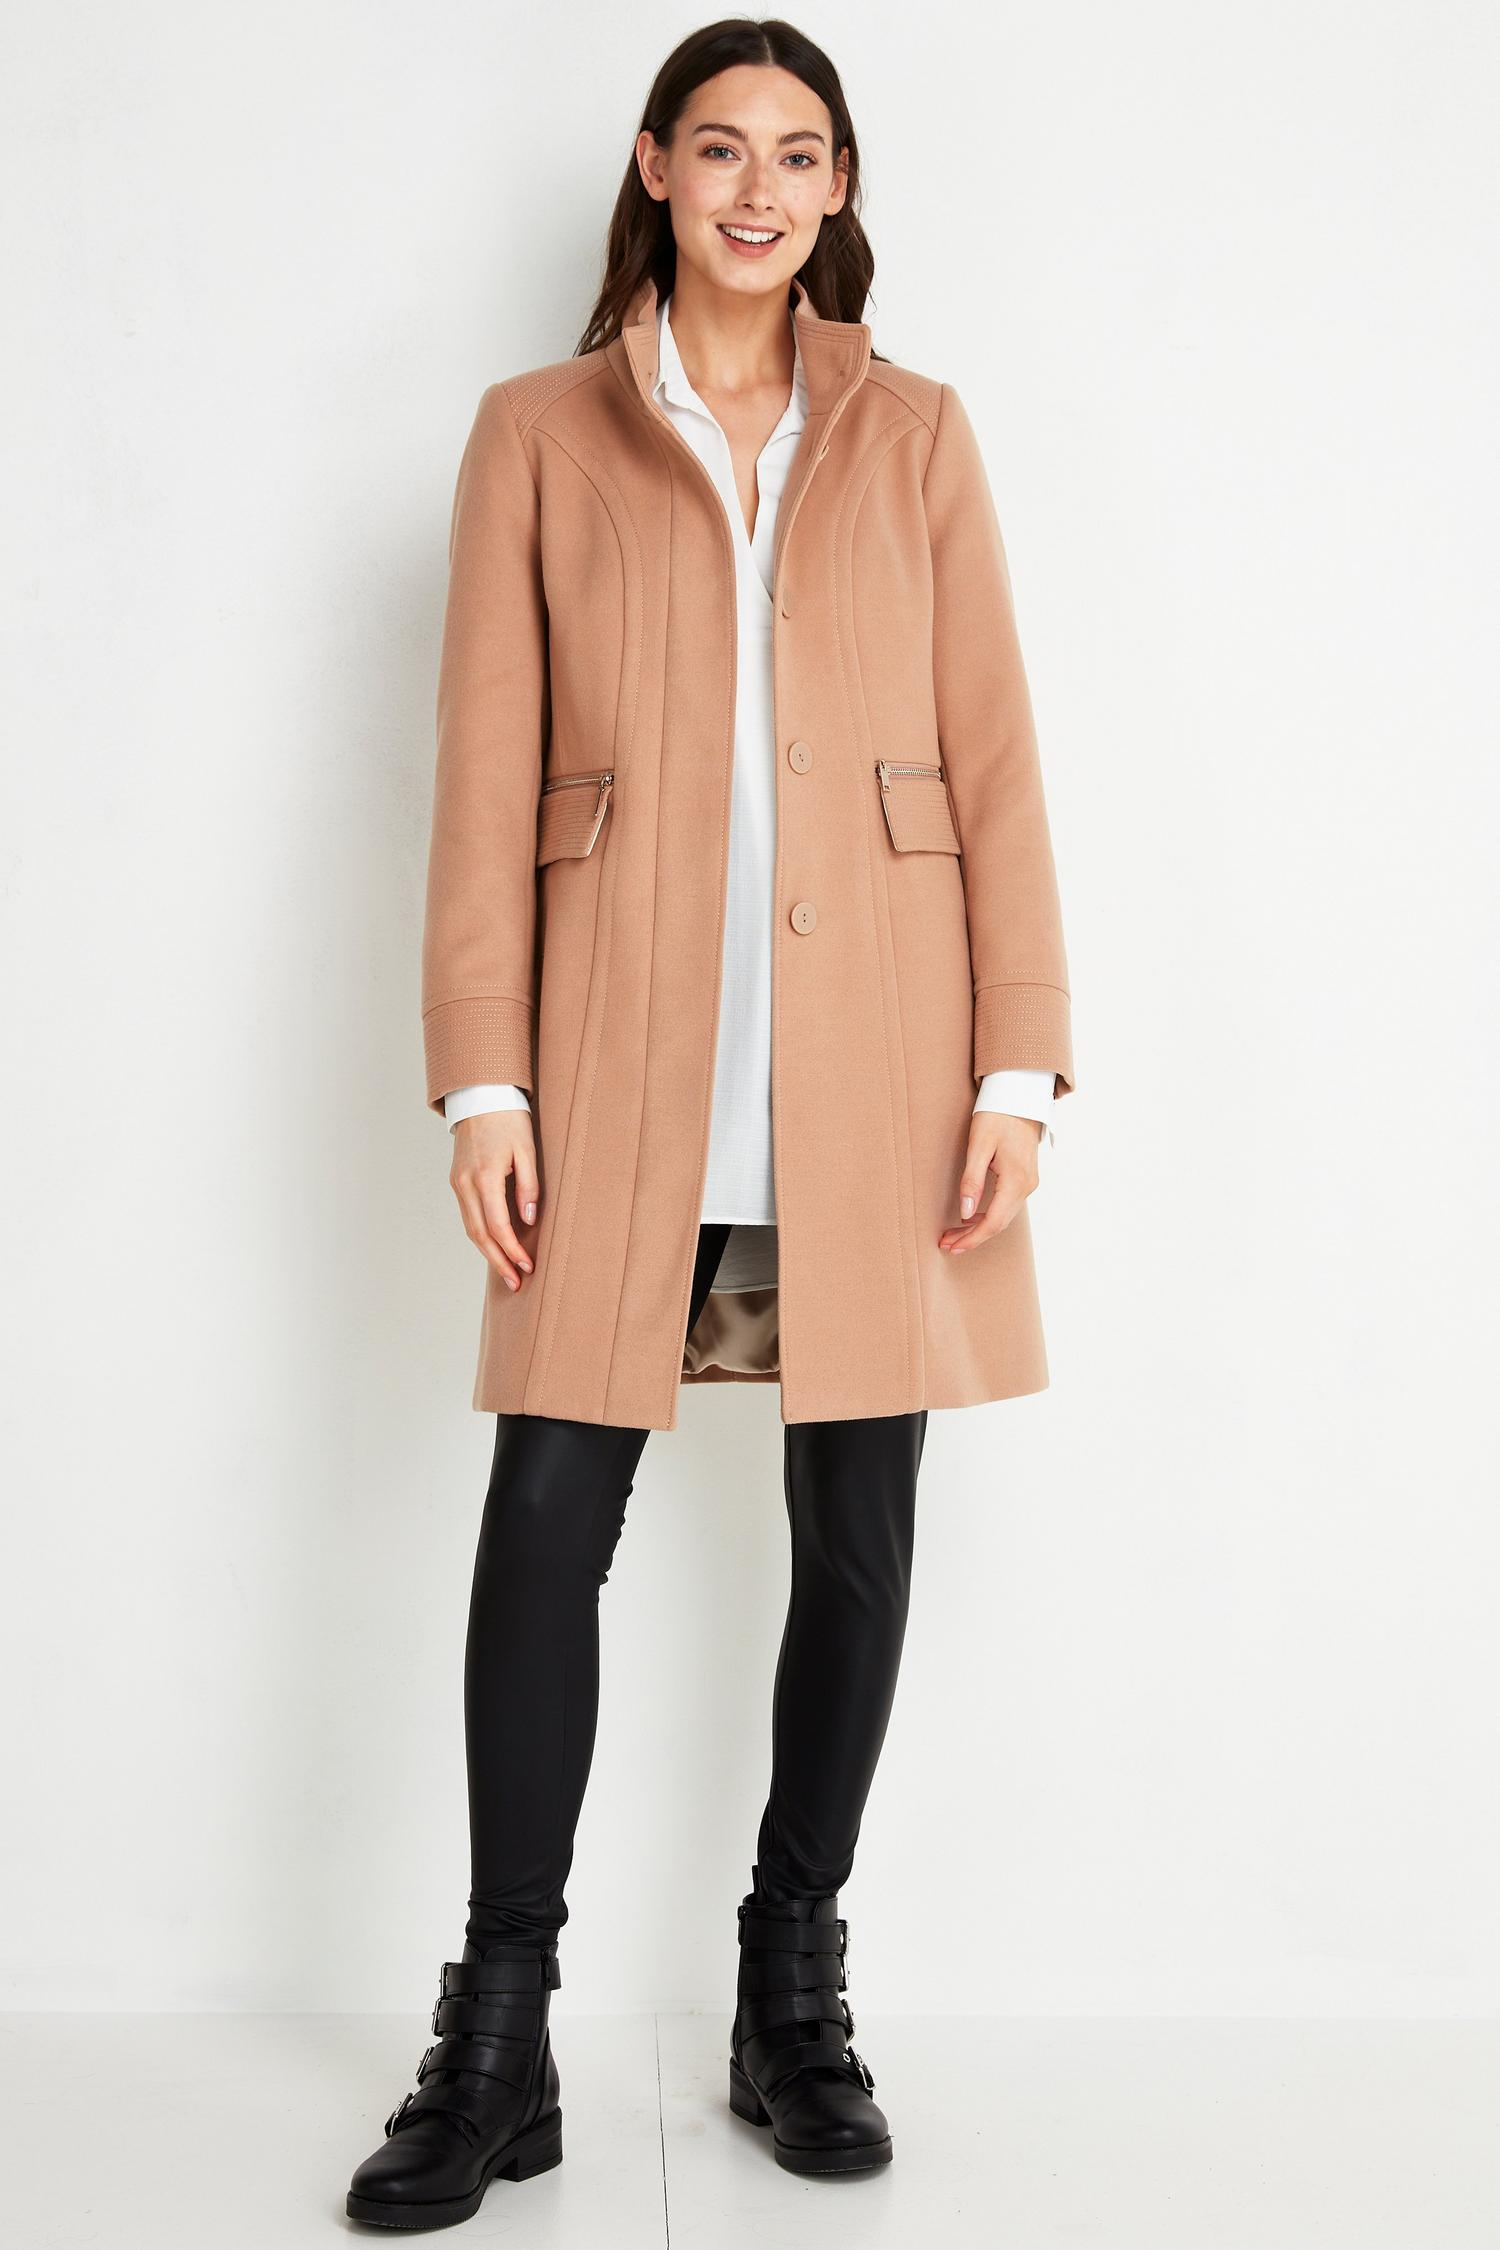 111 TALL Camel Faux Wool Funnel Neck Coat image number 1